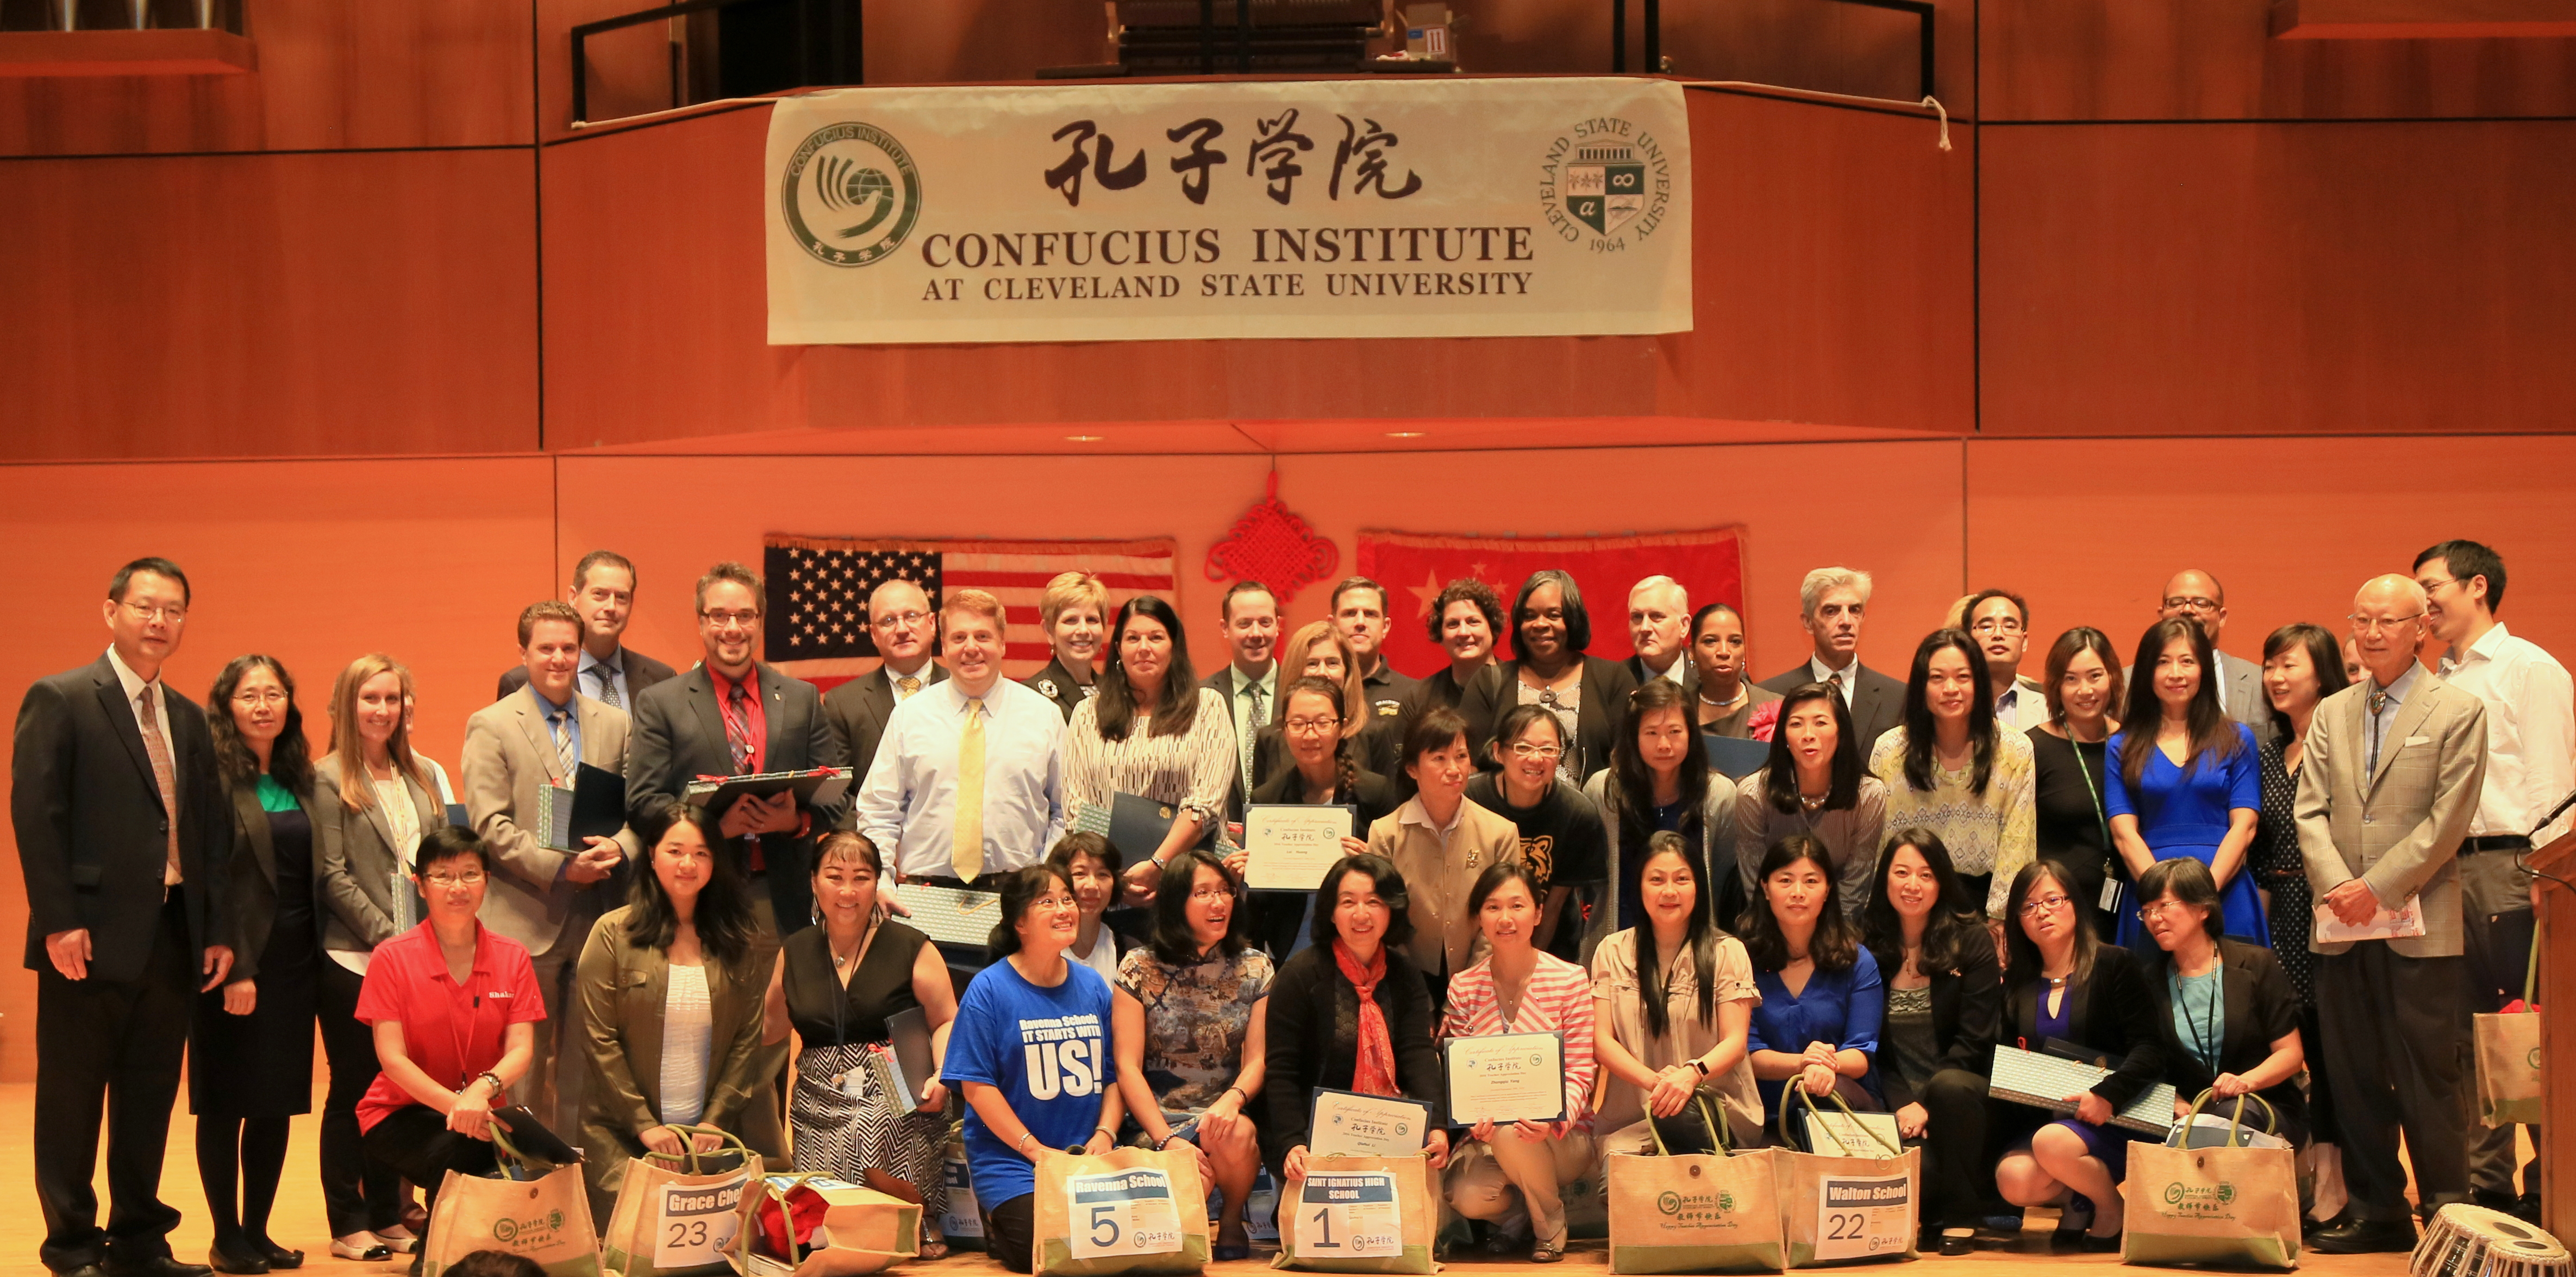 The Ninth Annual Teacher Appreciation Day with the Confucius Institute at Cleveland State University